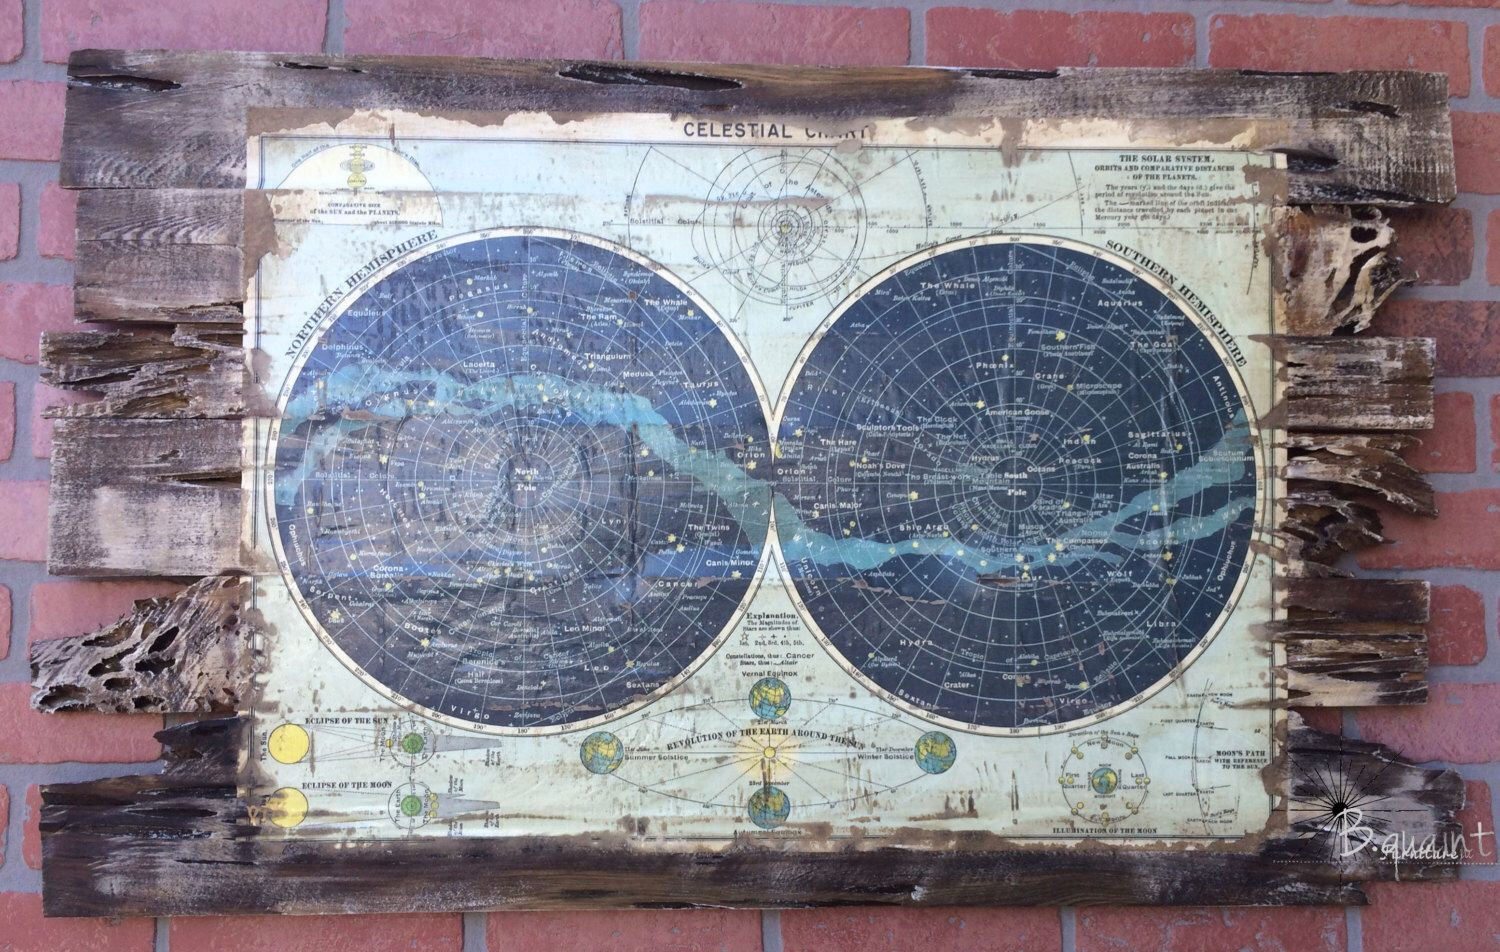 Pecky Cypress Wood Celestial Chart by Bquaint on Etsy https://www.etsy.com/listing/264752929/pecky-cypress-wood-celestial-chart